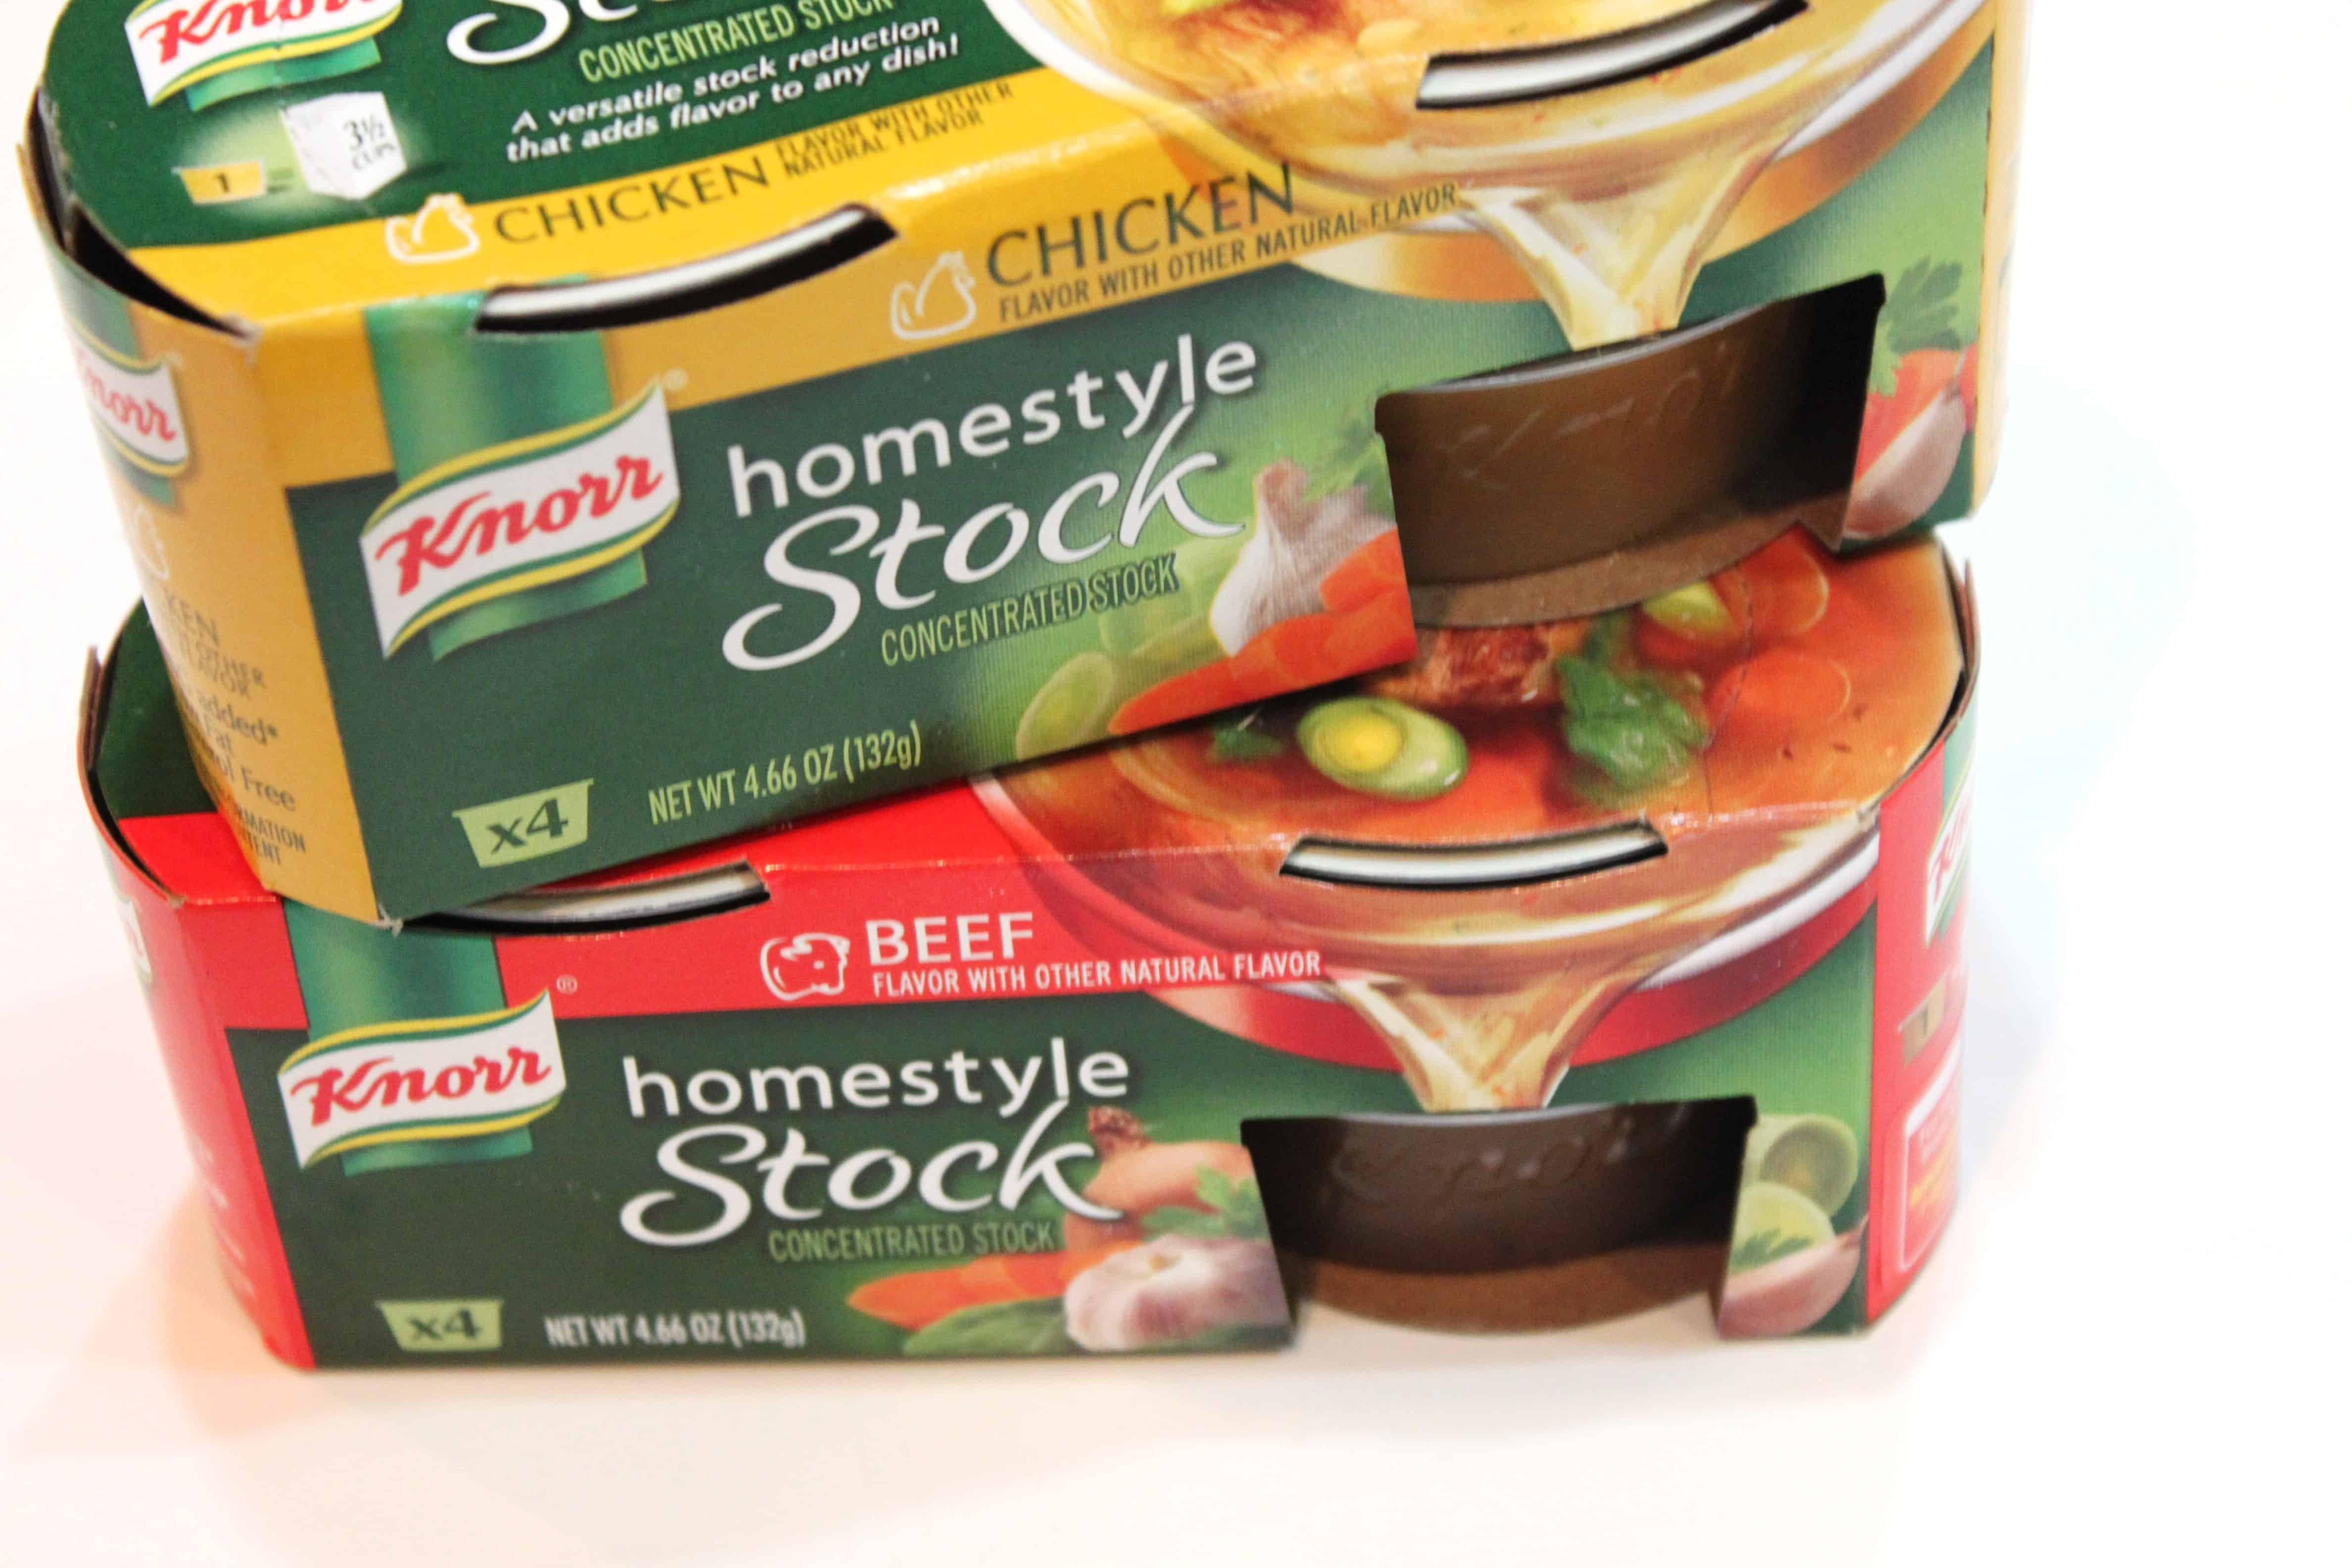 Knorr Homestyle Chicken Stock Ingredients Knorr Homestyle Stock